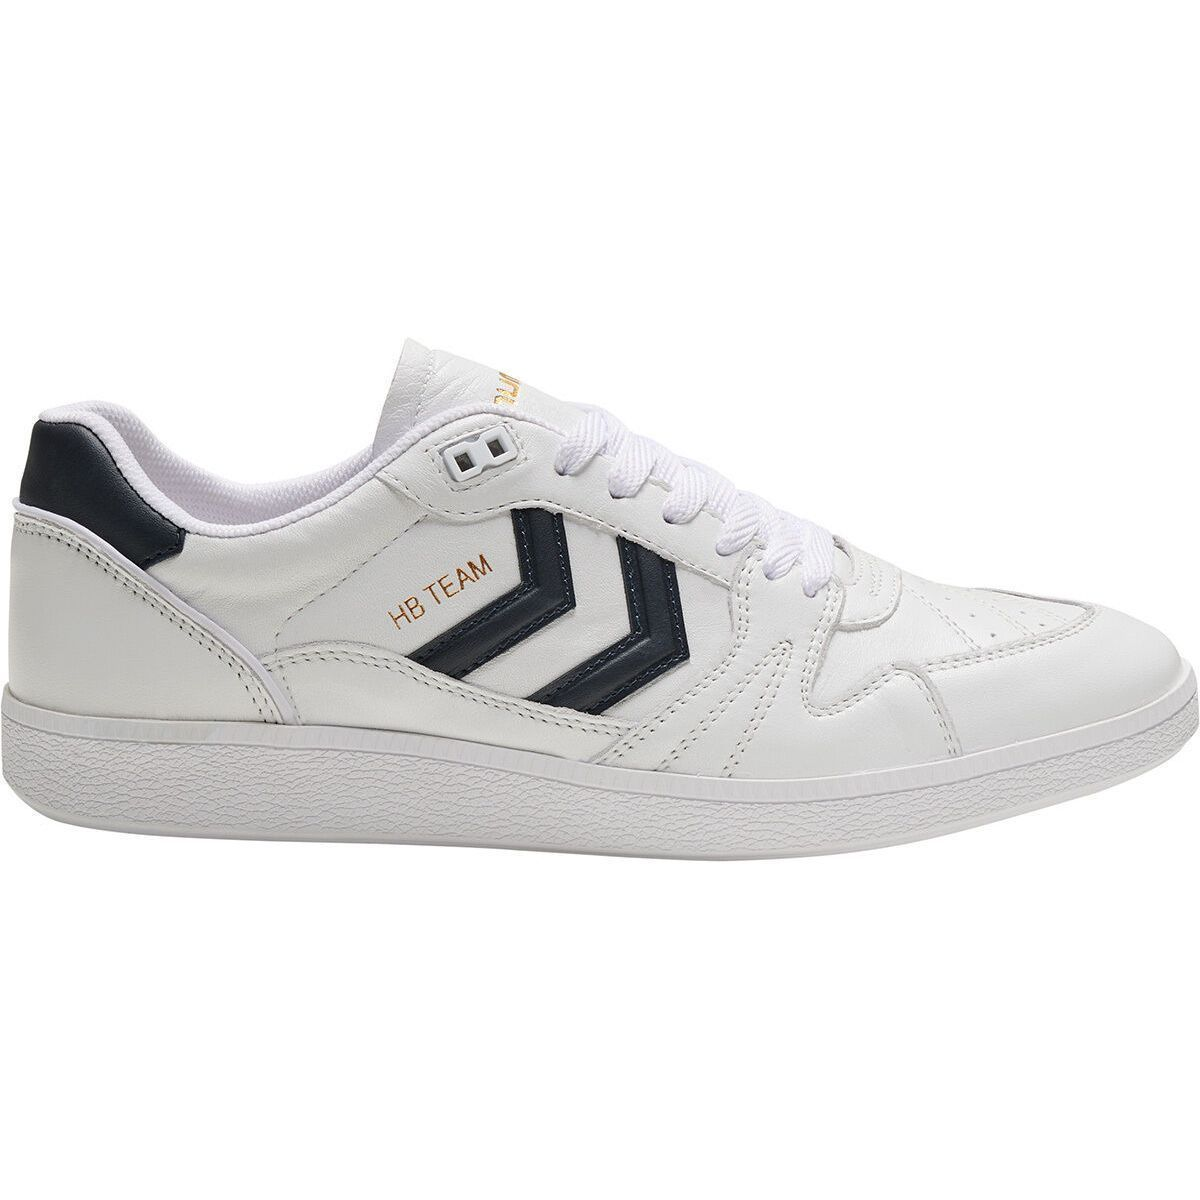 Hummel homme hb team leather blanc